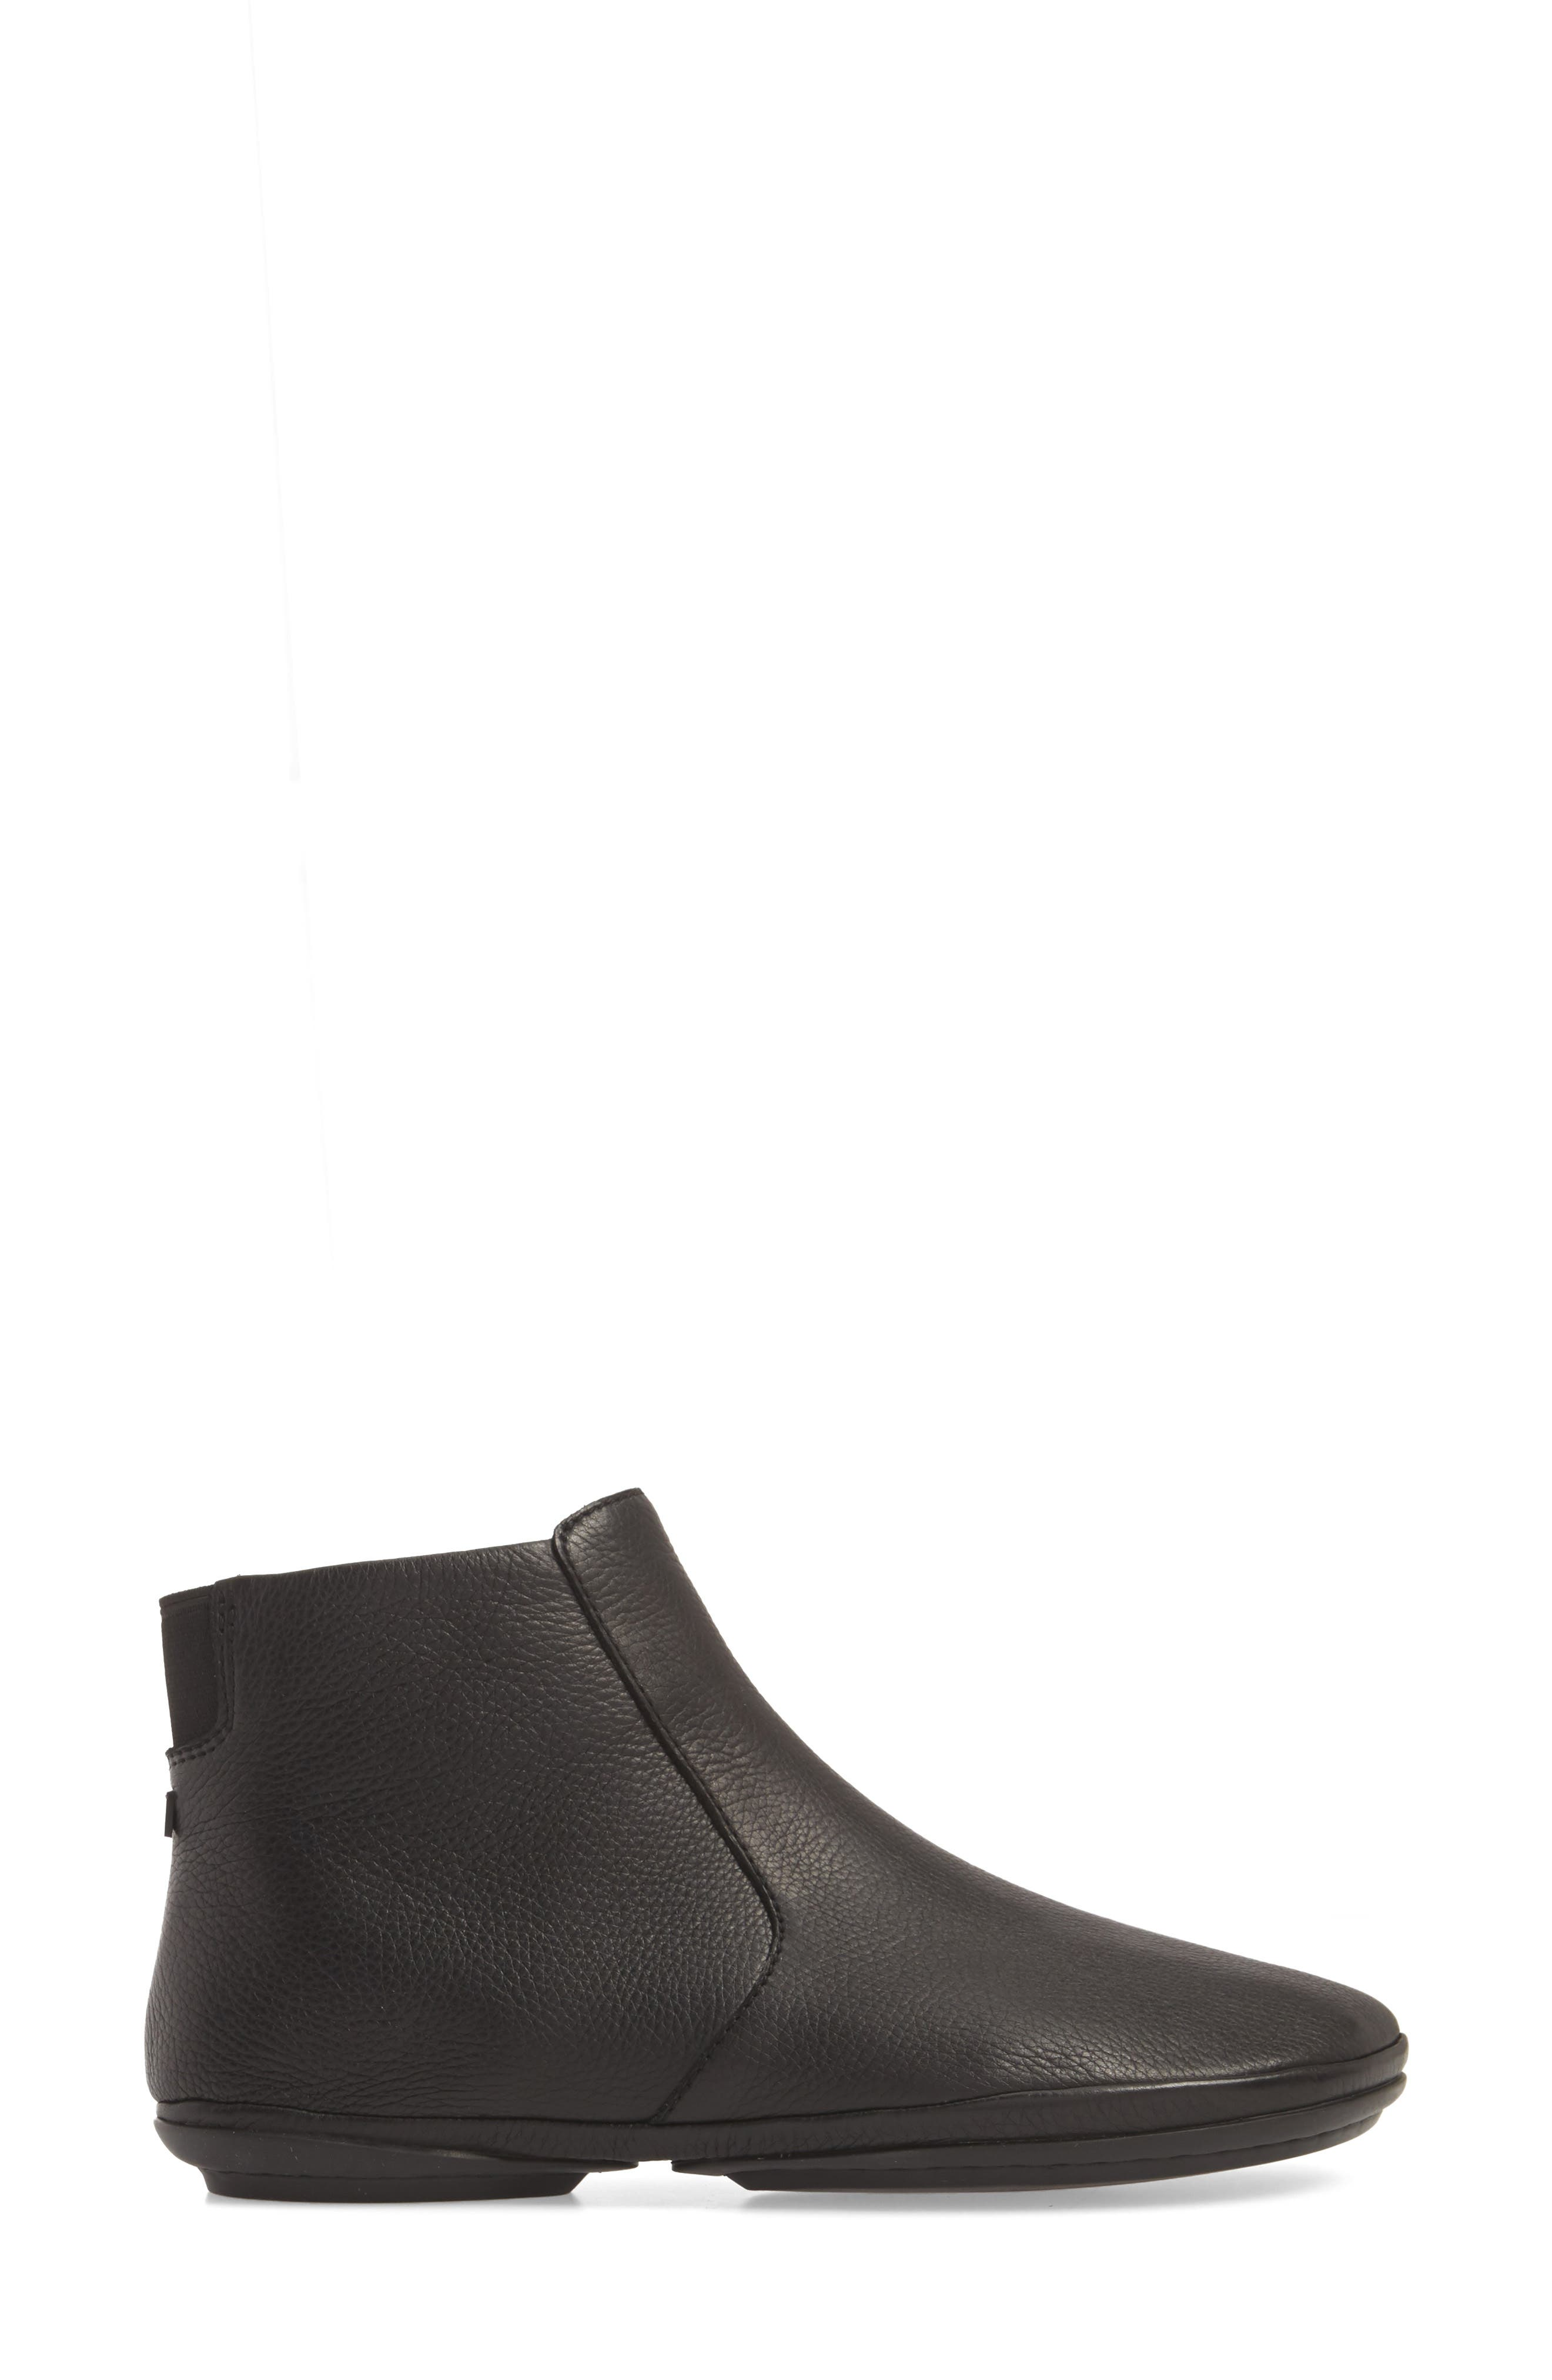 Right Nina Bootie,                             Alternate thumbnail 3, color,                             BLACK LEATHER